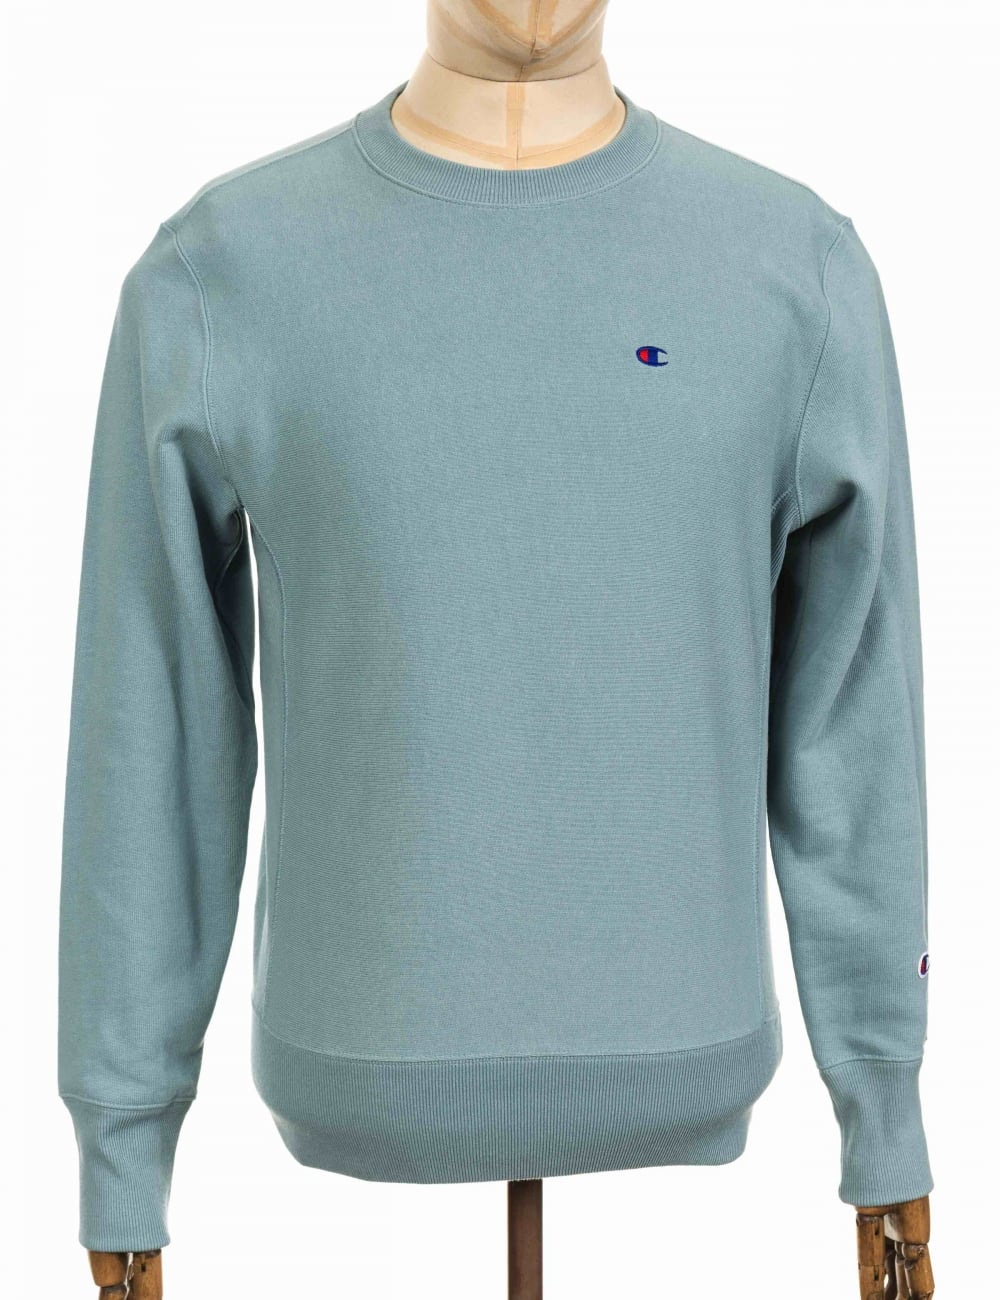 041b86b23352 Champion Reverse Weave Crewneck Sweatshirt - CGR Blue - Clothing ...